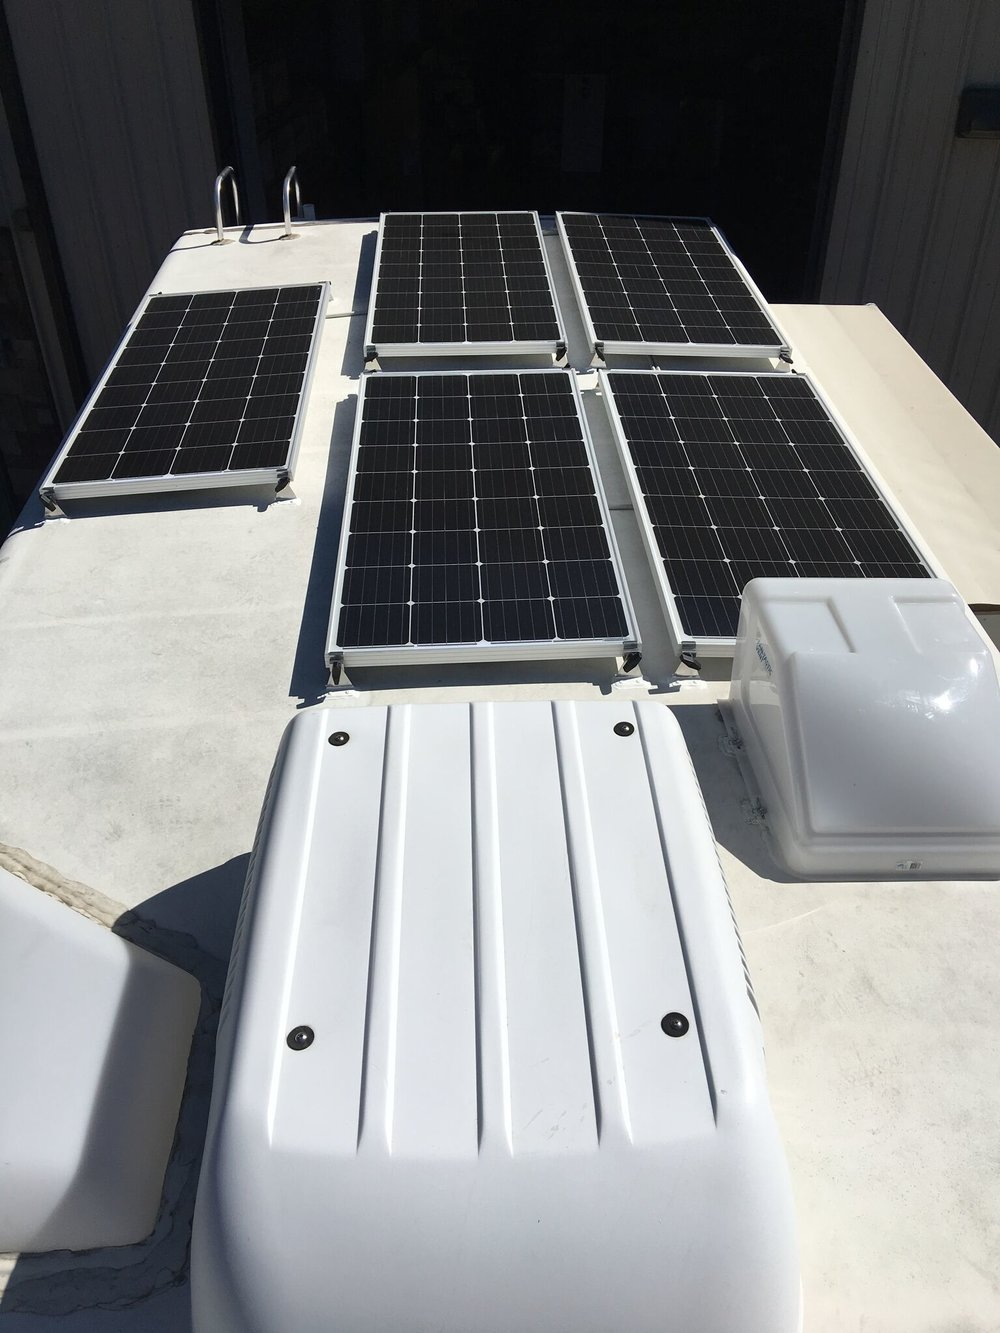 Solar Panel Installation For Rvs Trailers Am 6v Circuit Diagram Equipment Added 5x Sf180 Kits 1x Roof Combiner Box Victron Bluesolar Smart